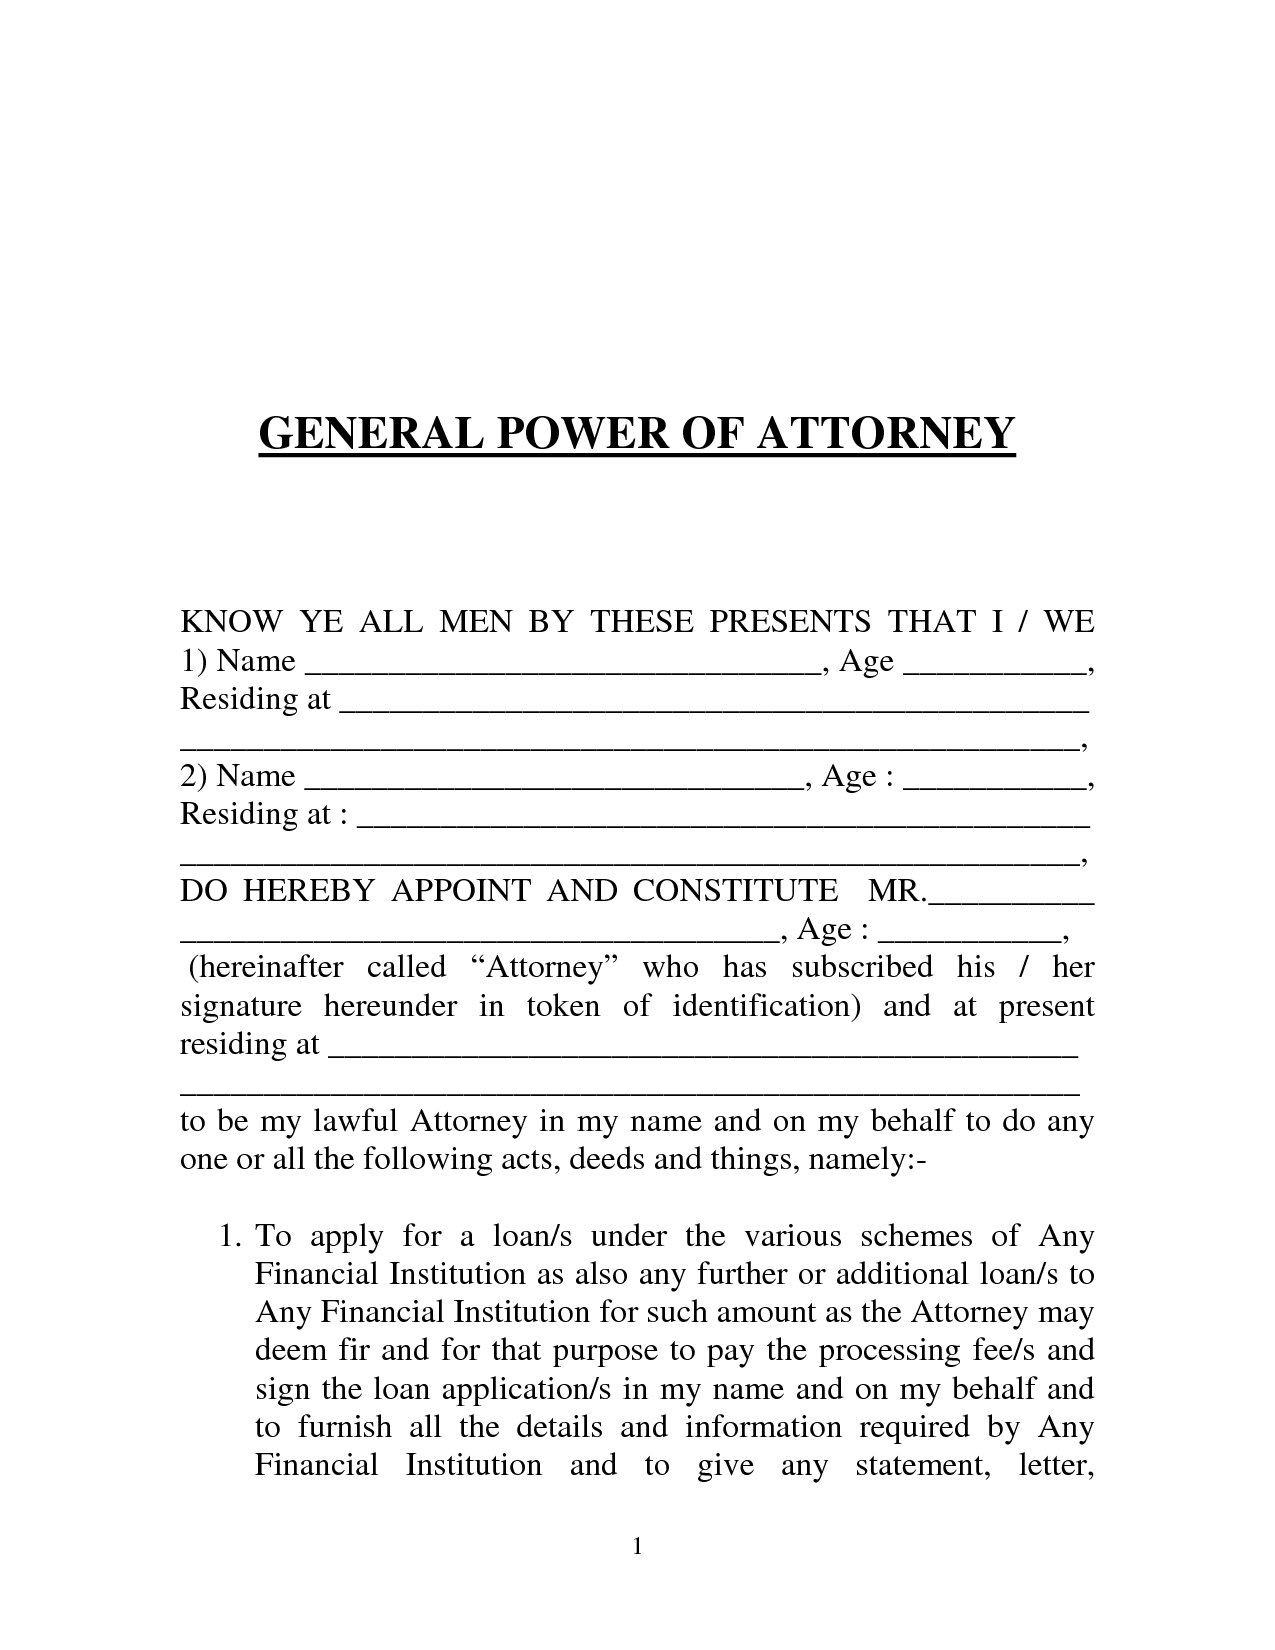 Power Of attorney Resignation Letter Template - General Power attorney form India by Prettytulips Letter Of